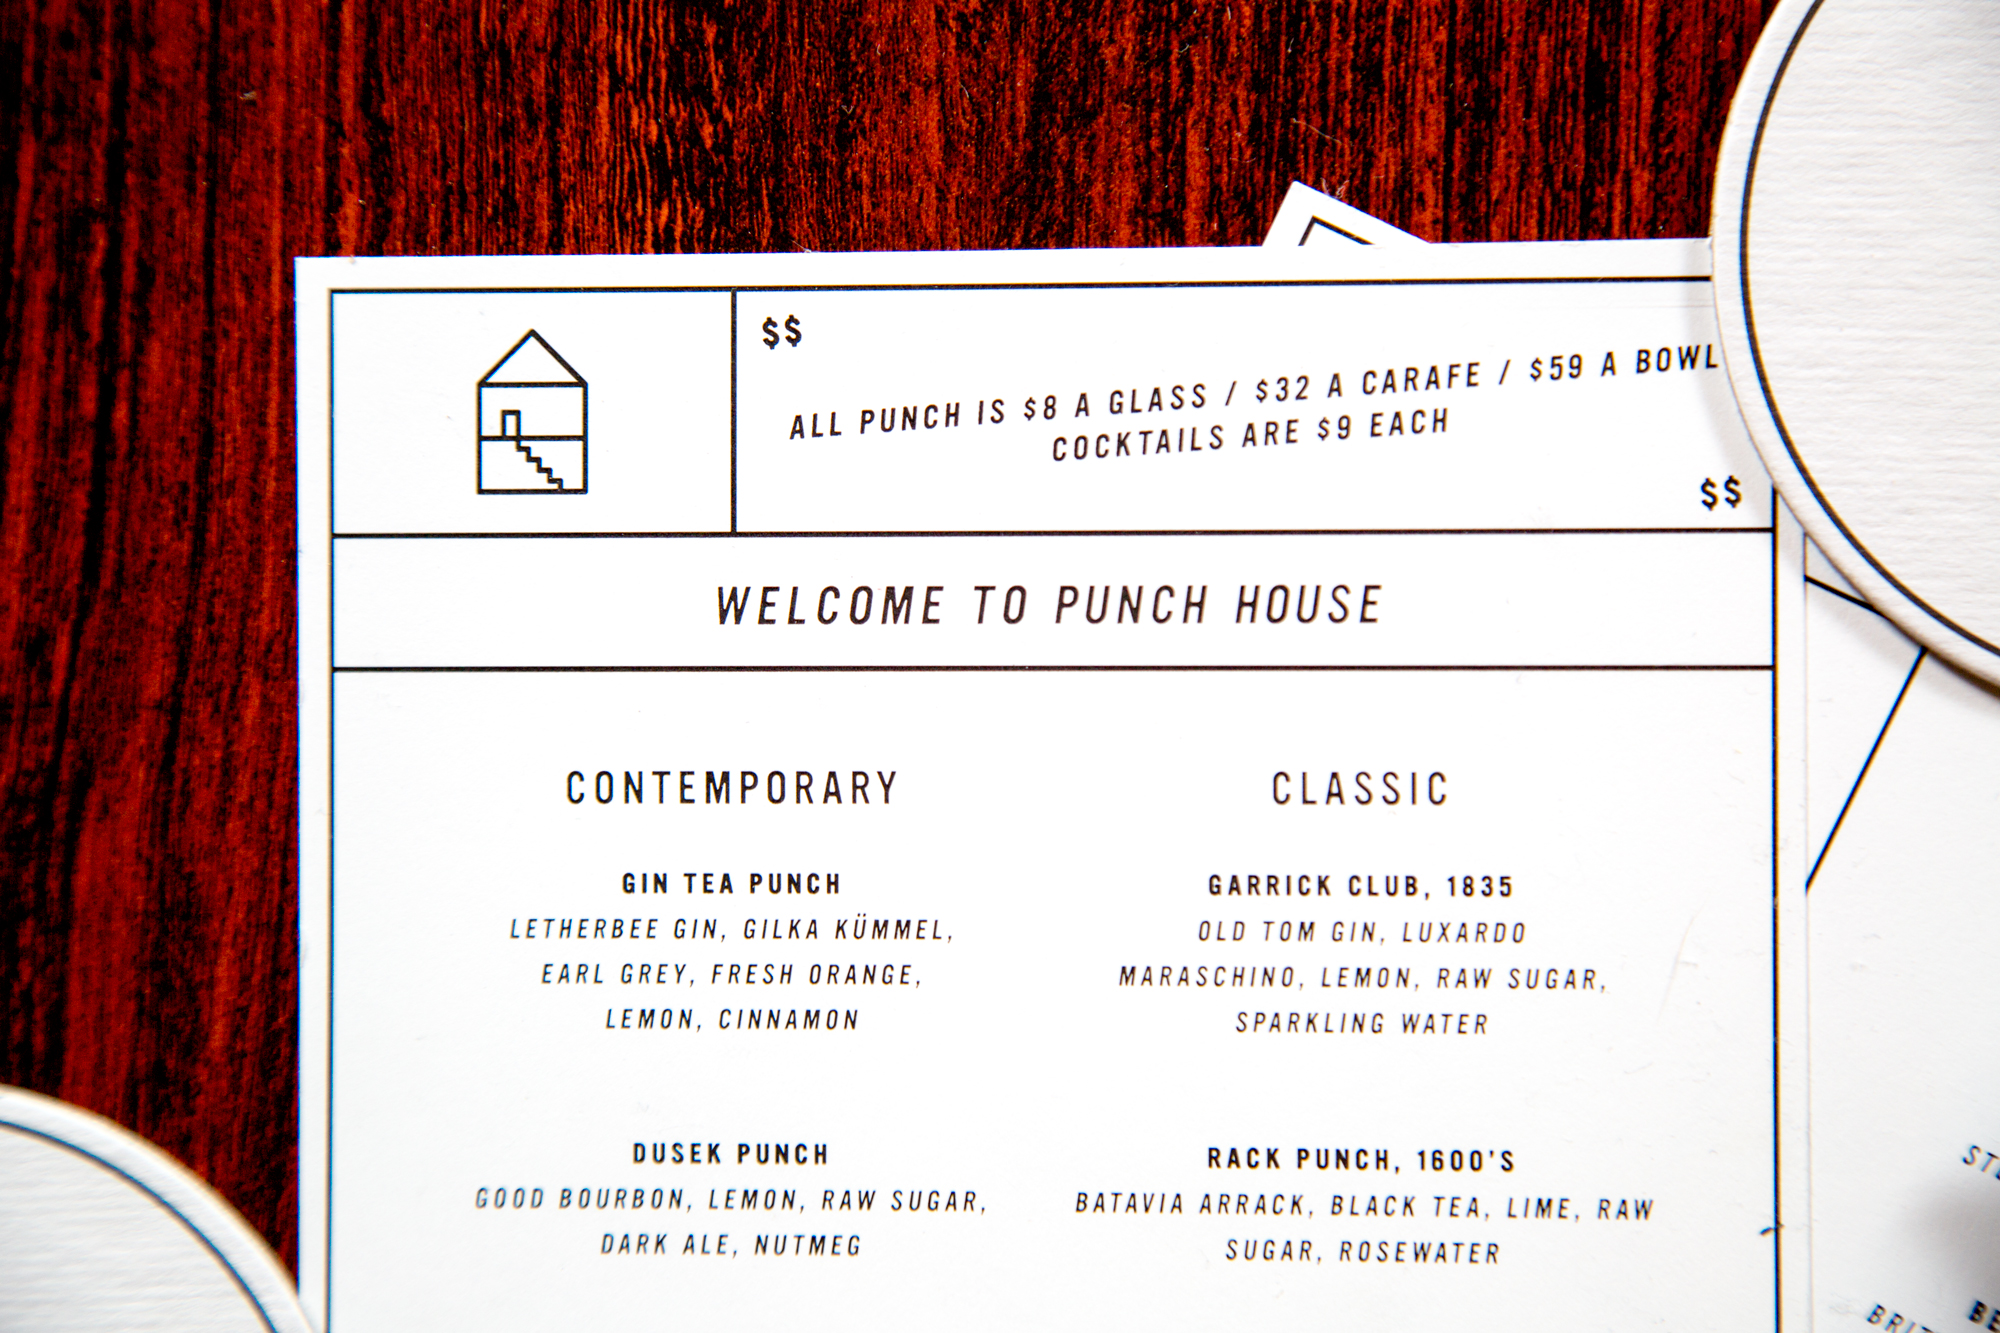 Punch House : The Studio of Dan Blackman